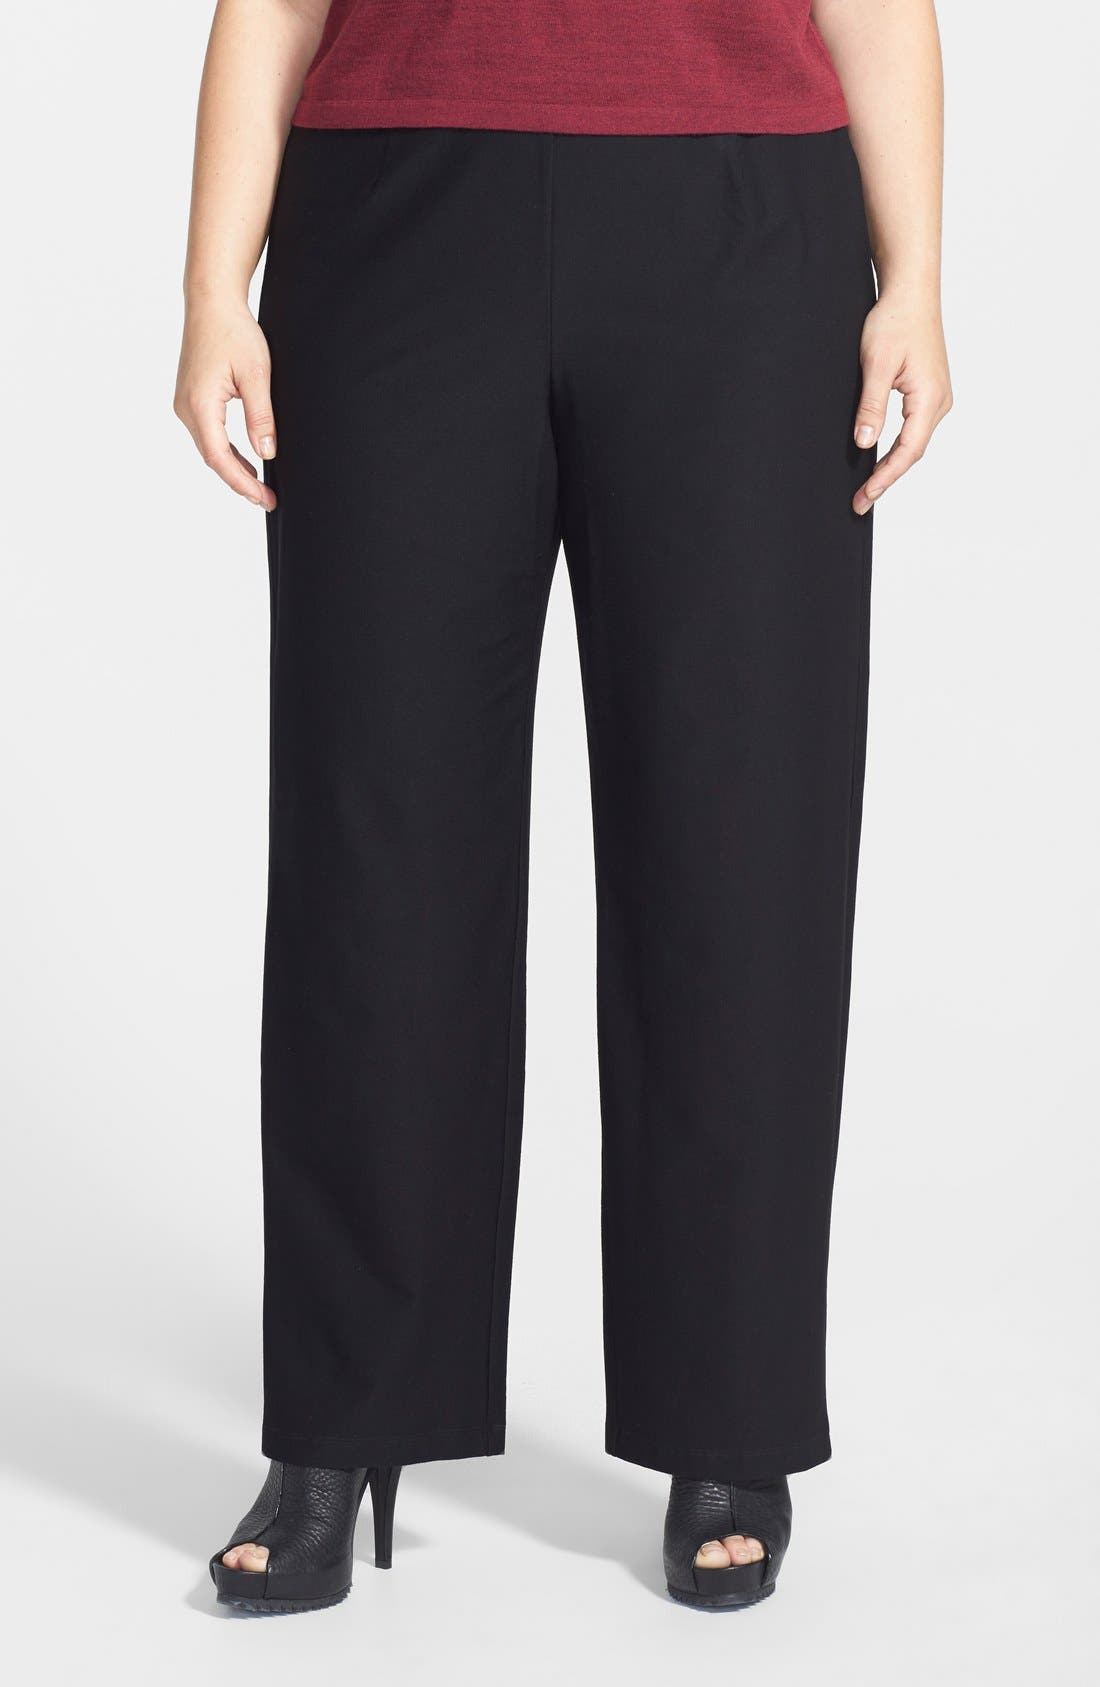 EILEEN FISHER, High Rise Straight Leg Crepe Pants, Main thumbnail 1, color, BLACK